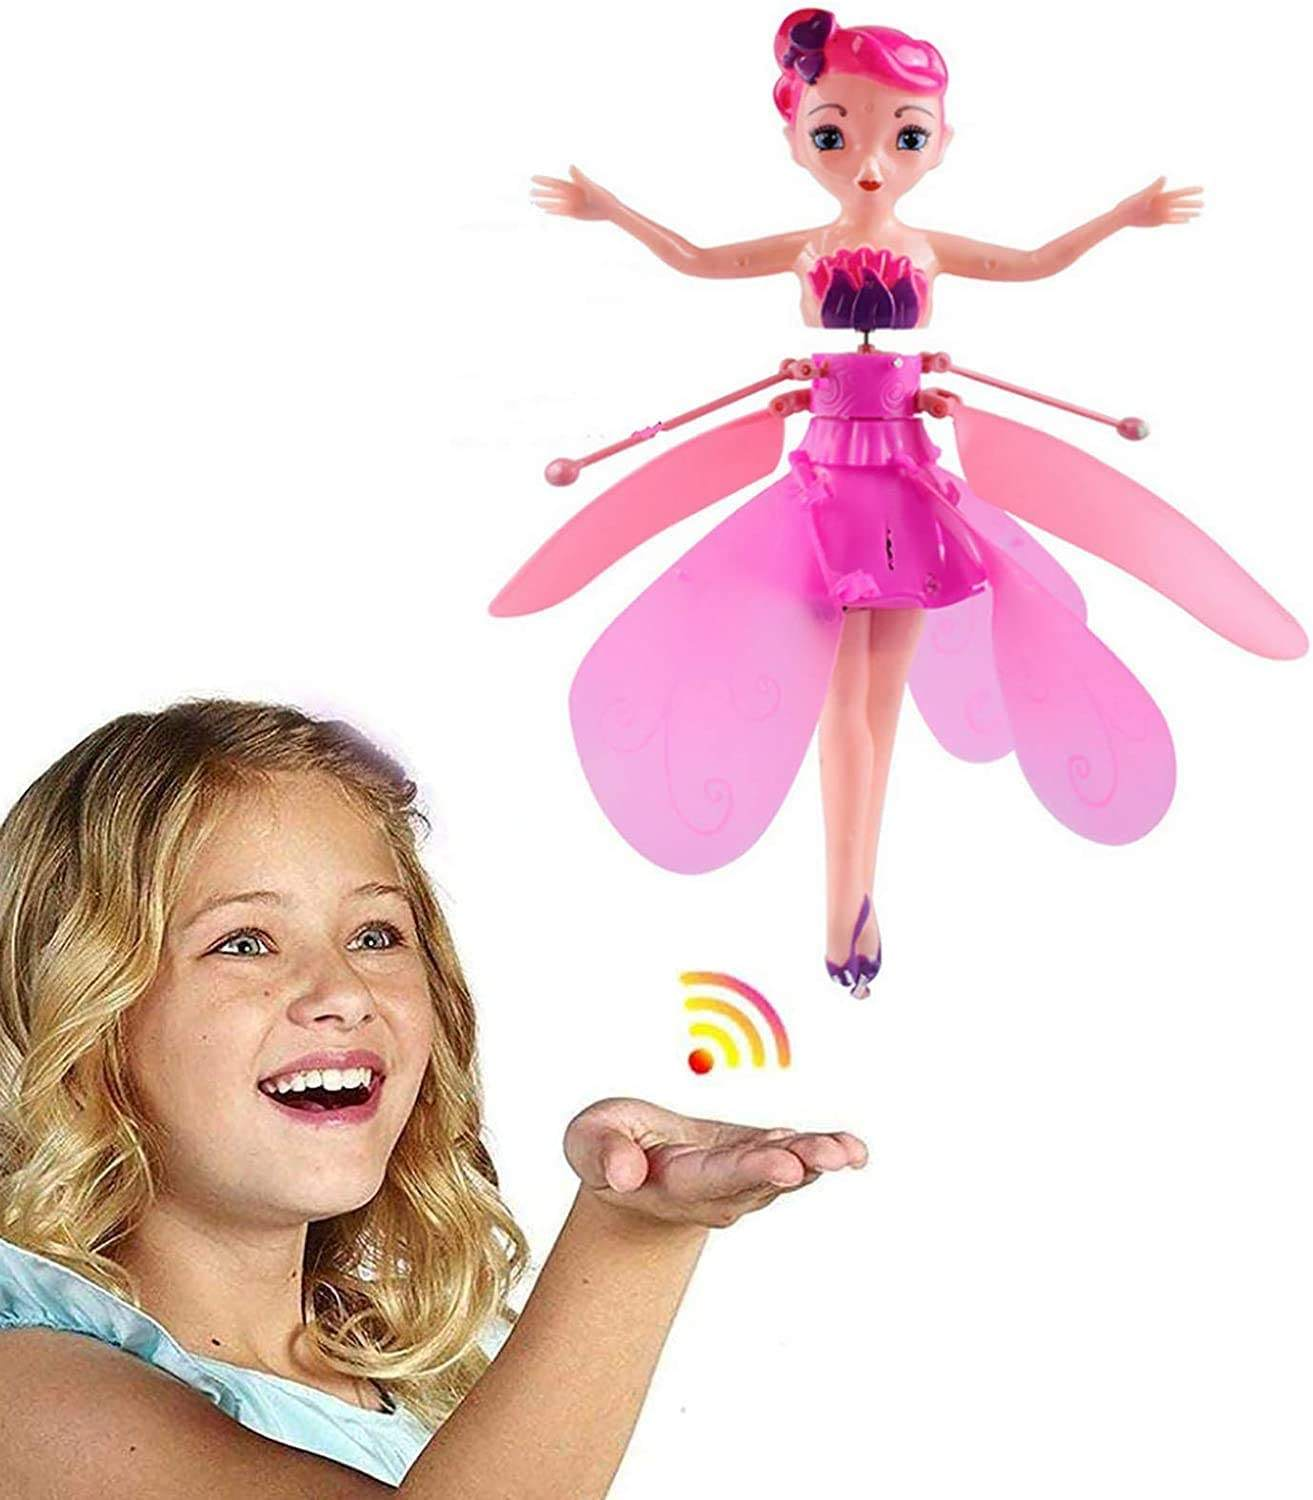 Fery flying doll flying toys for kids by hand control flying doll toy fairy